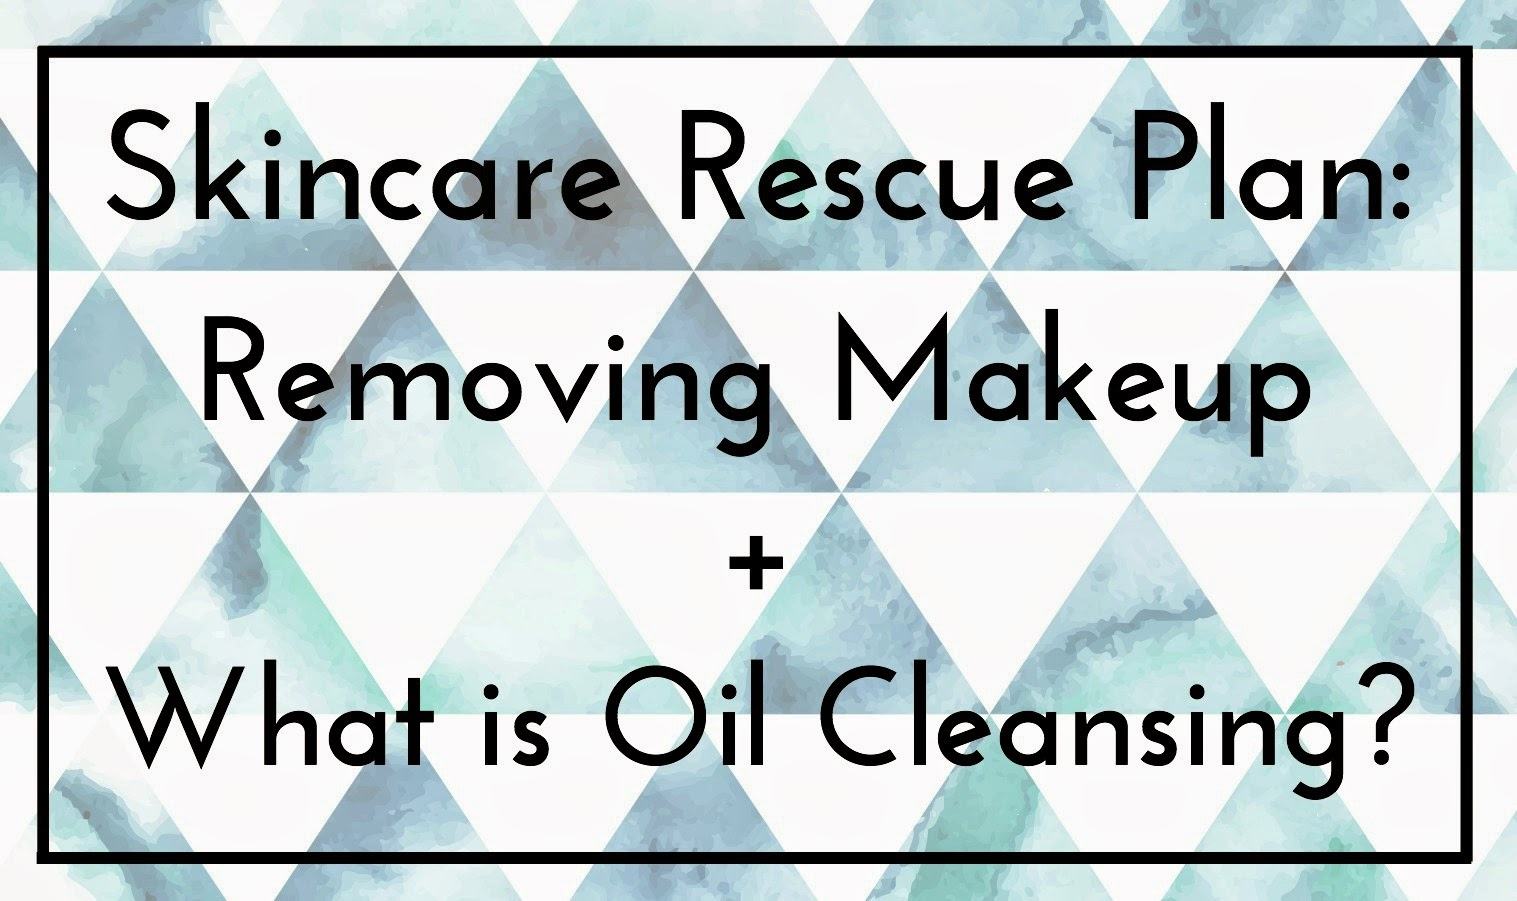 Skincare rescue plan - Why do I have to take my makeup off and what is oil cleansing?